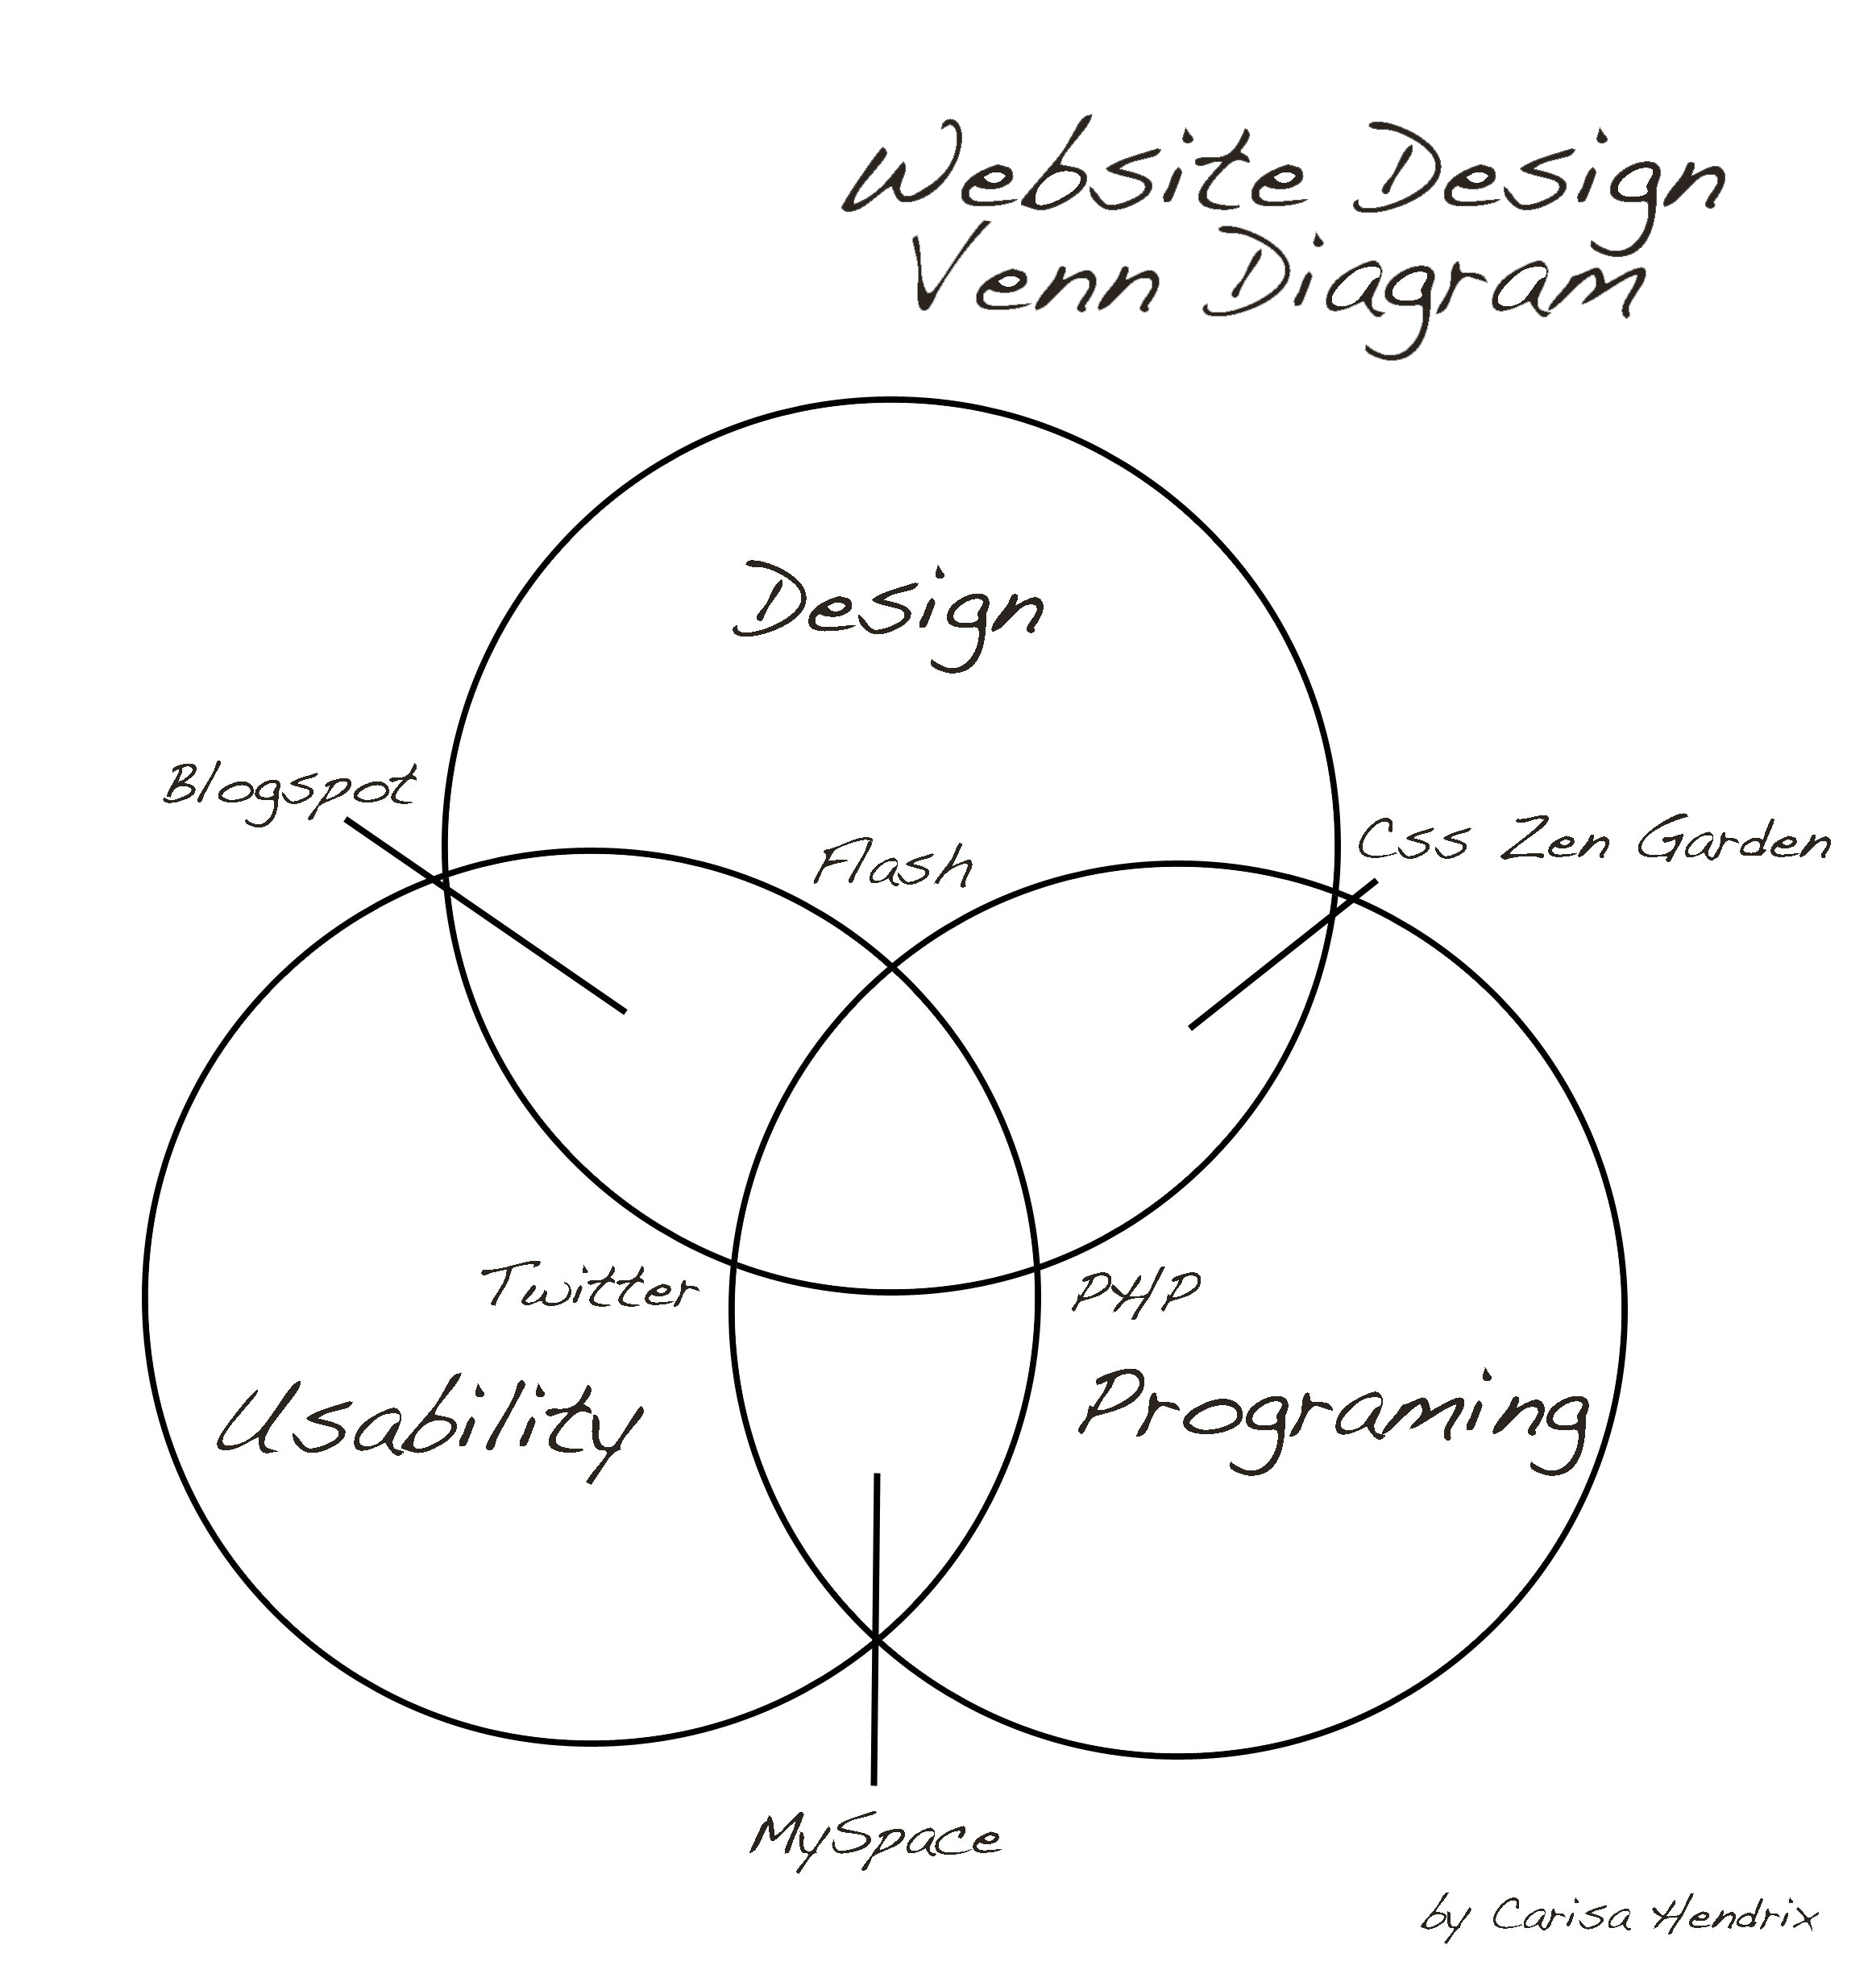 Web Design Venn Diagram